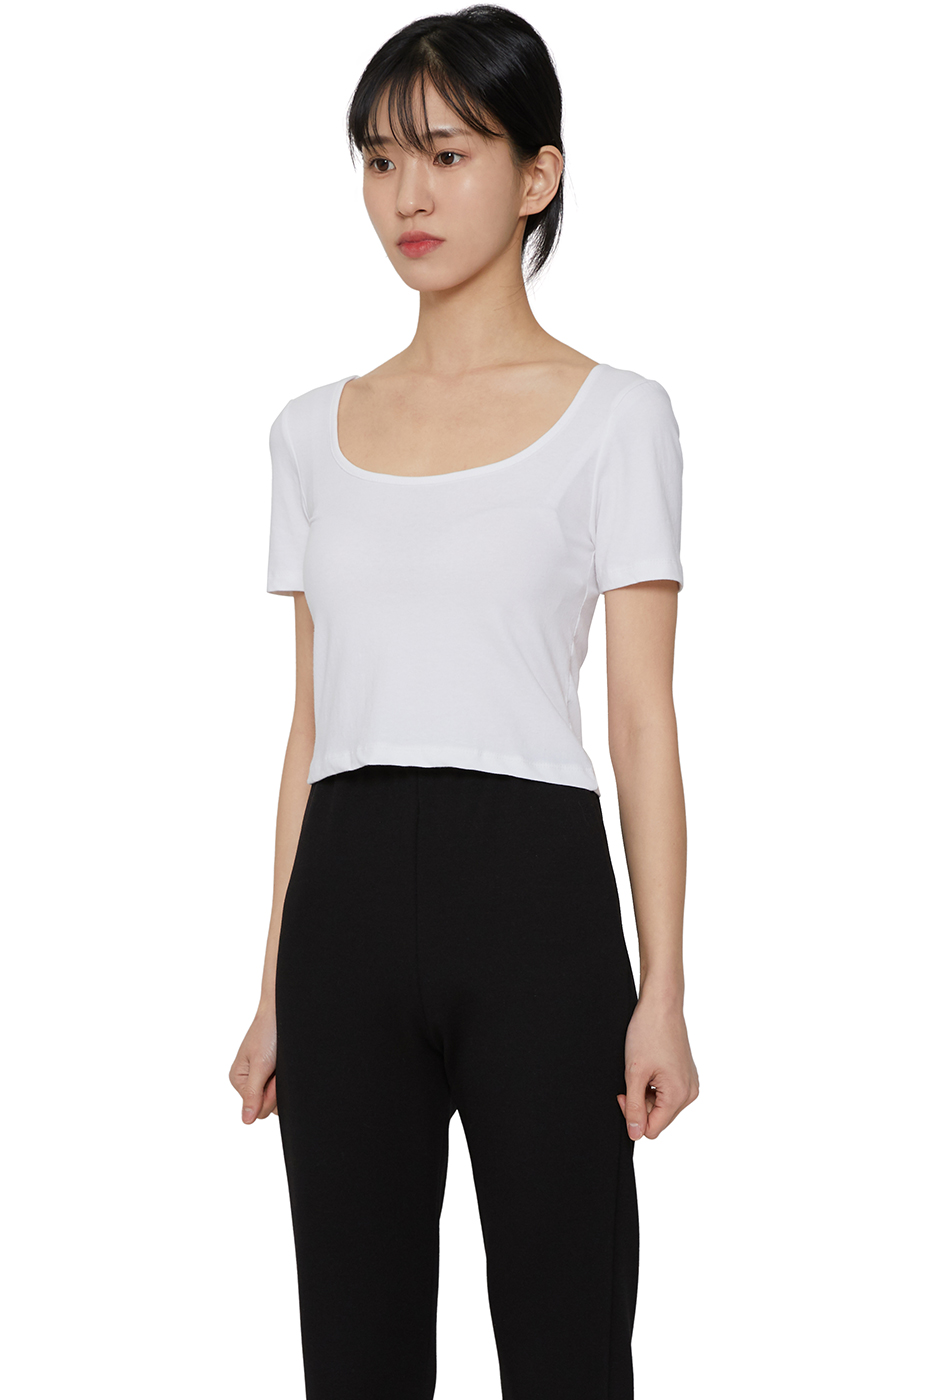 Our You-neck cropped top